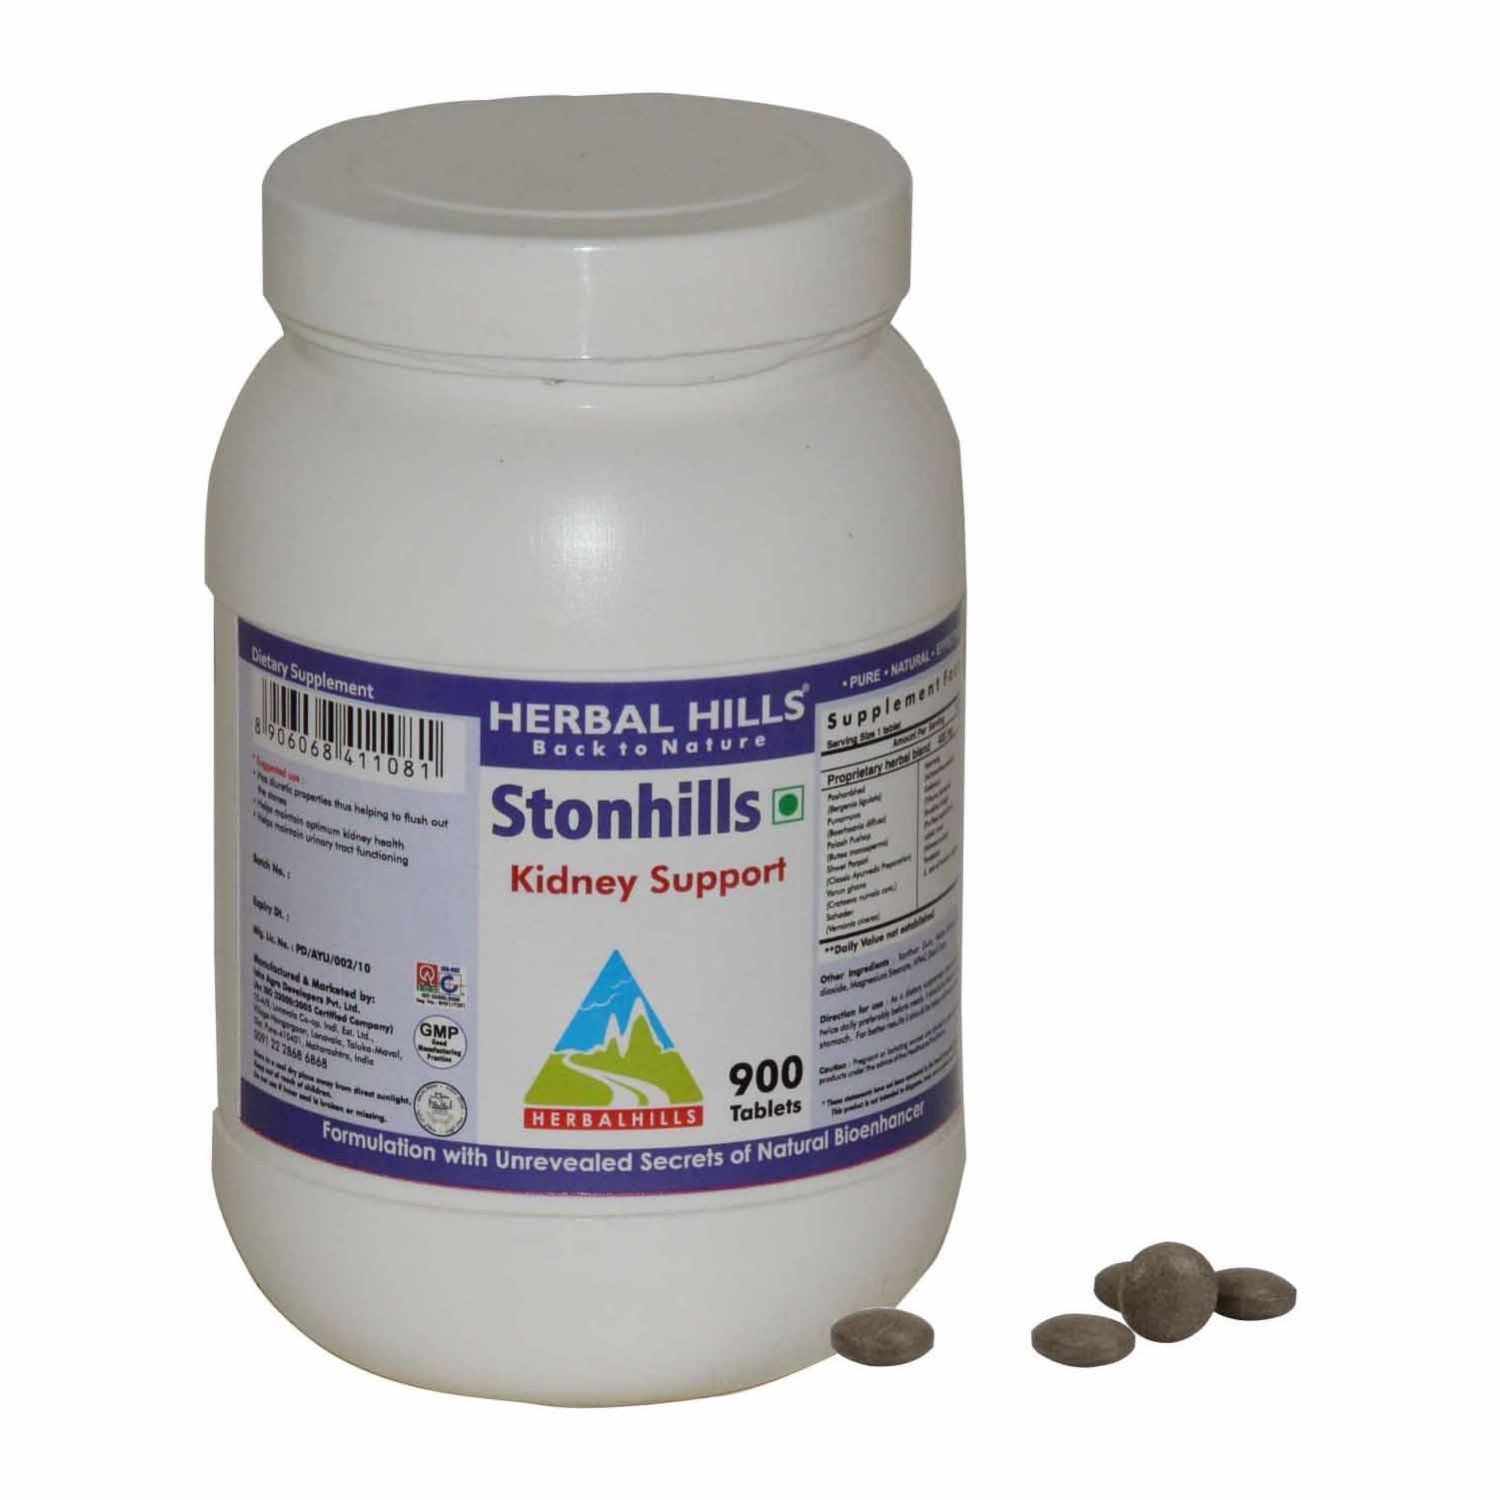 Stonhills 900 Tablets - Kidney Support